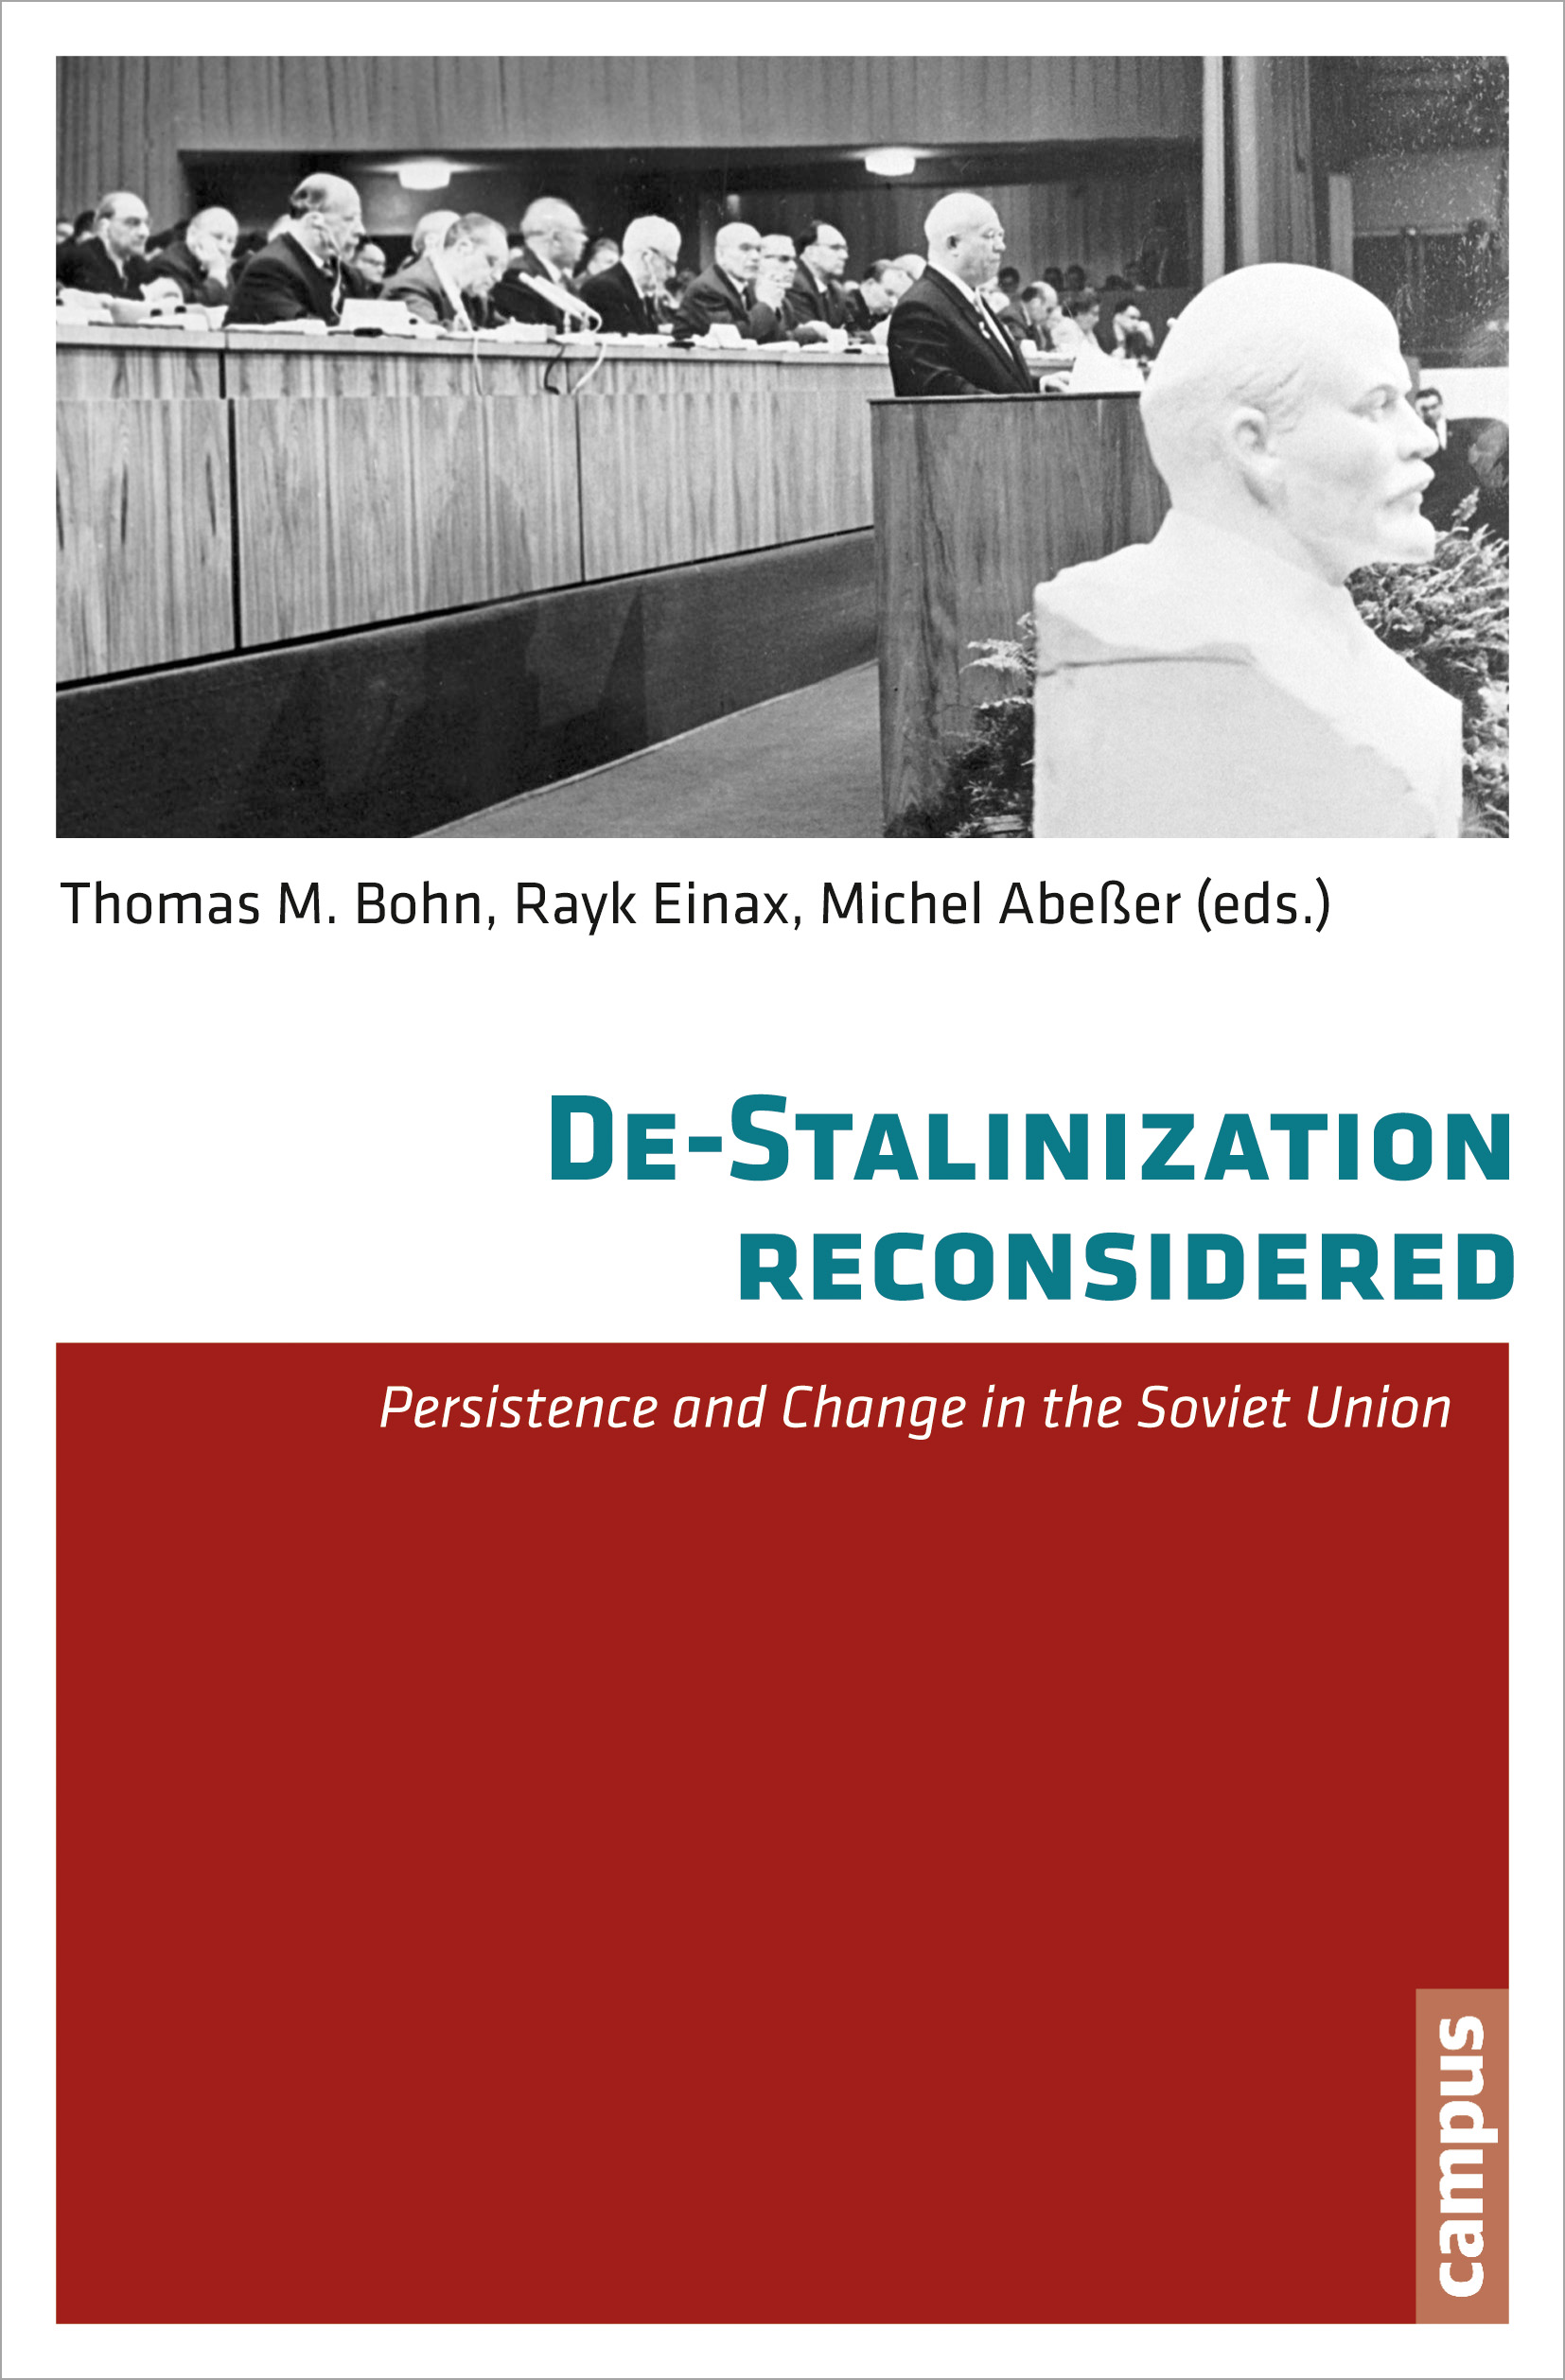 de-stalinization reconsidered cover.jpg